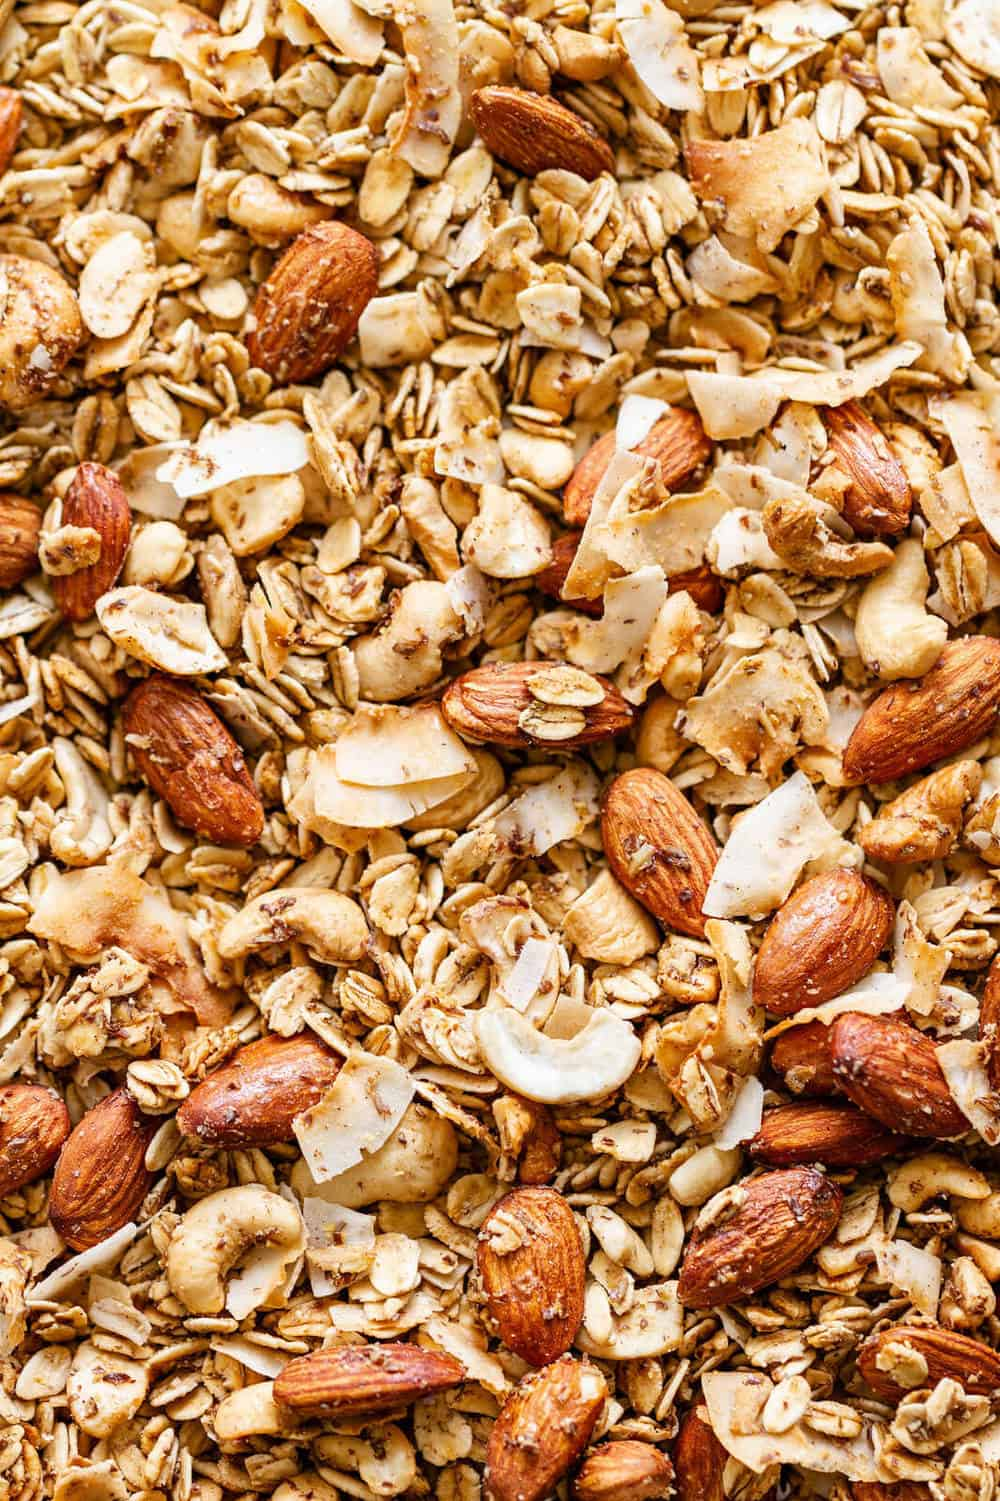 crunchy healthy homemade granola fresh from the oven